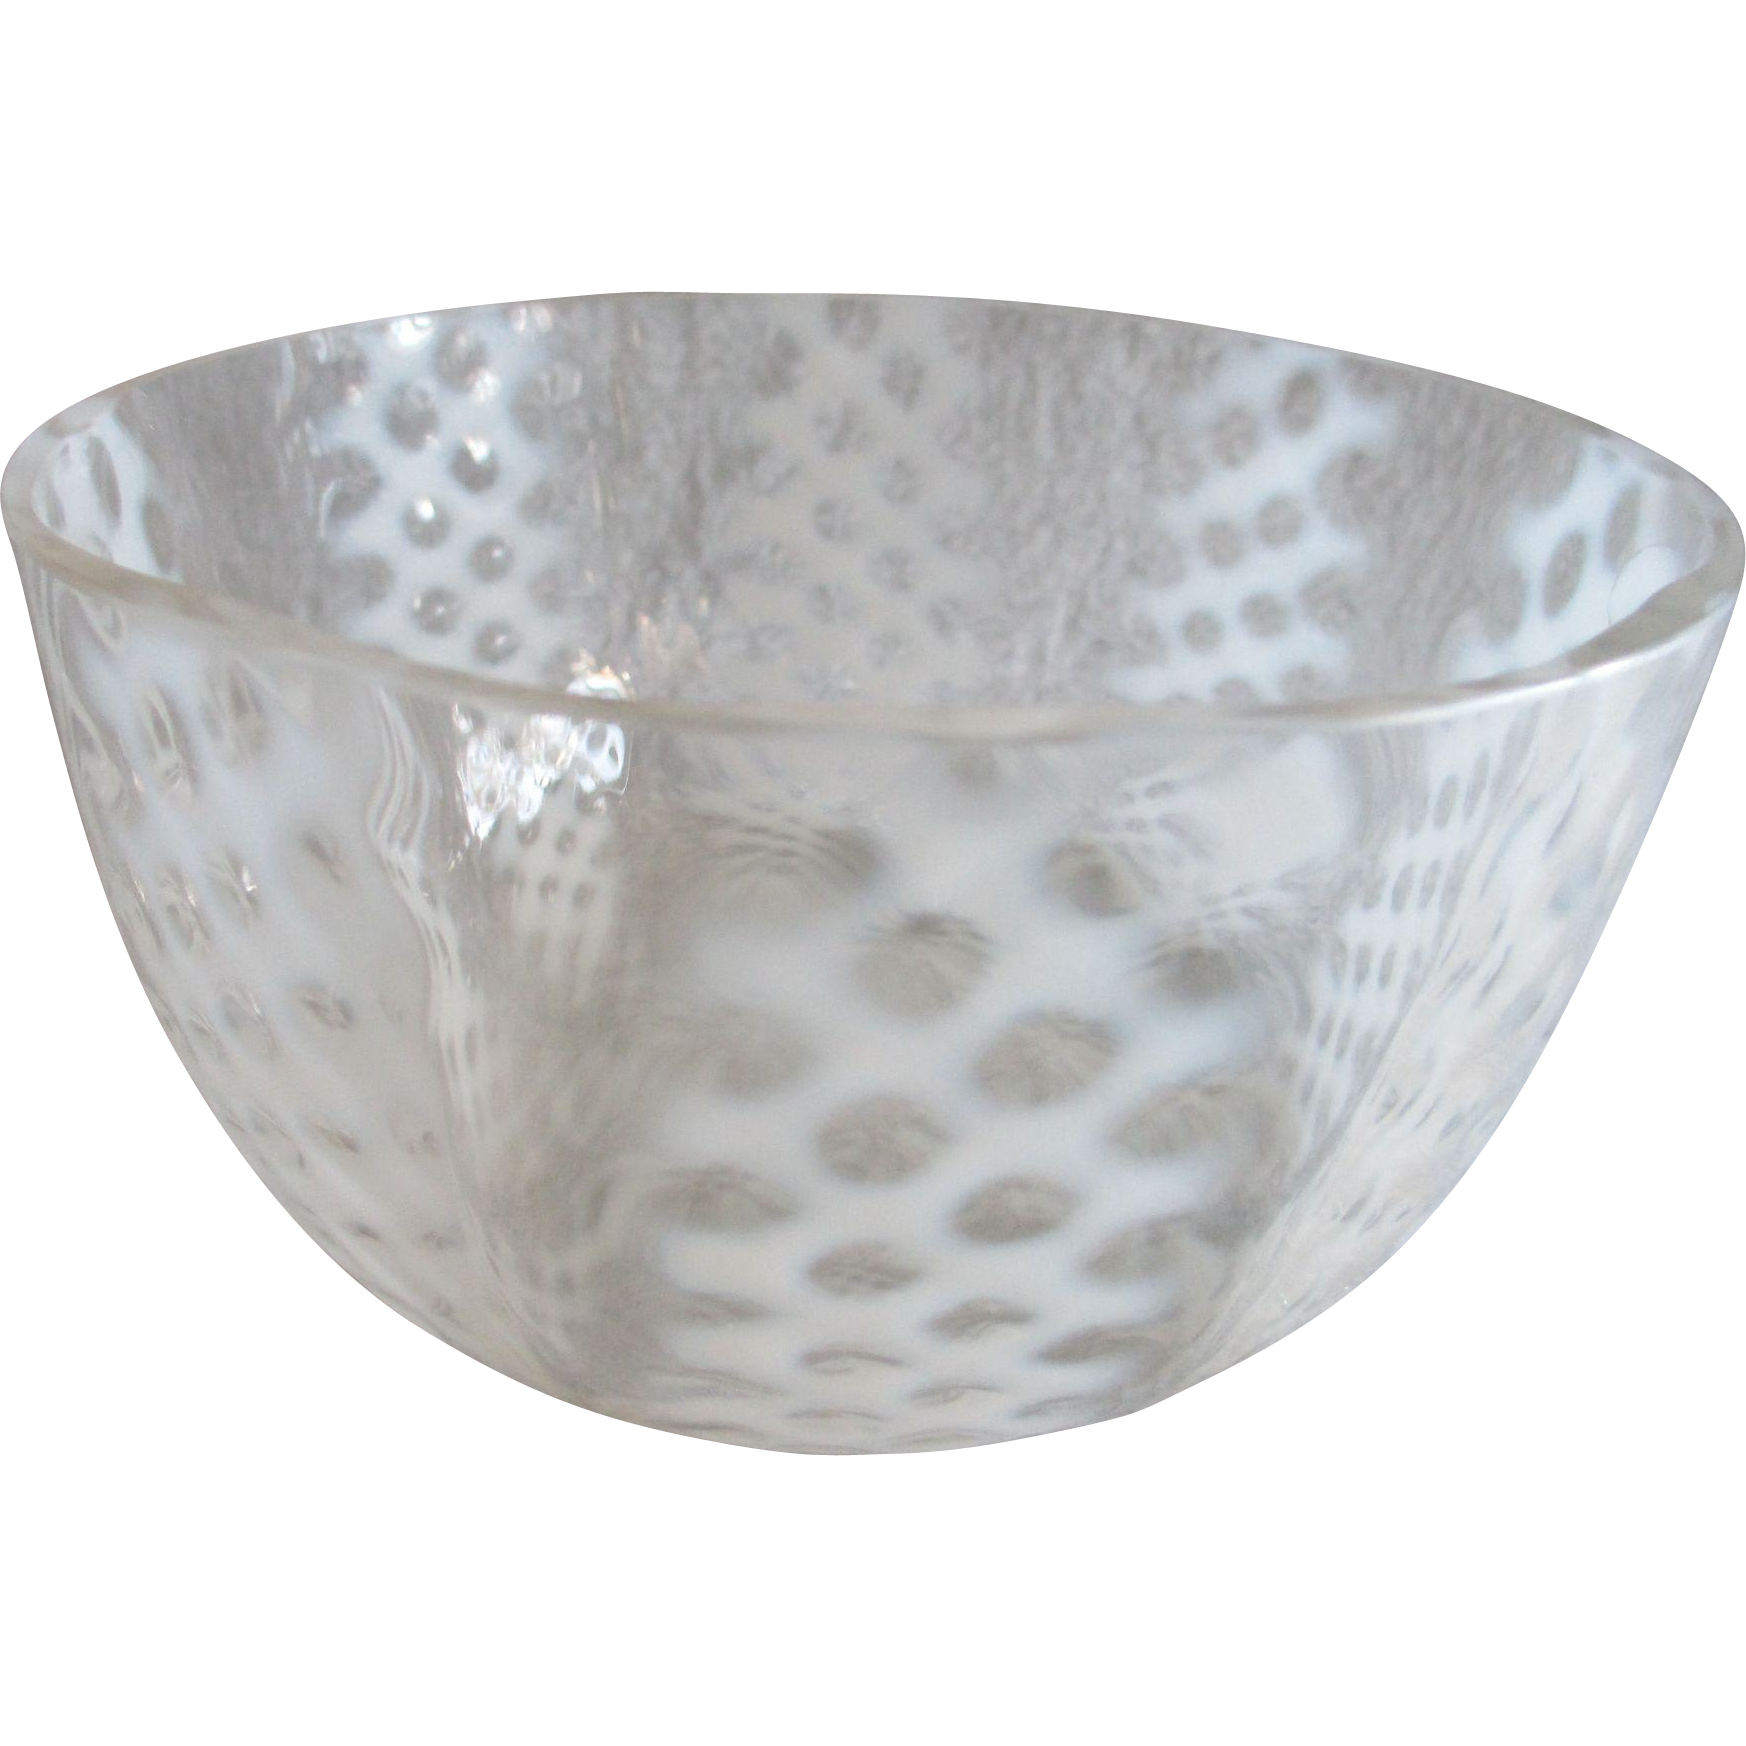 White Opalescent Glass : Consolidated lamp and glass co white opalescent criss